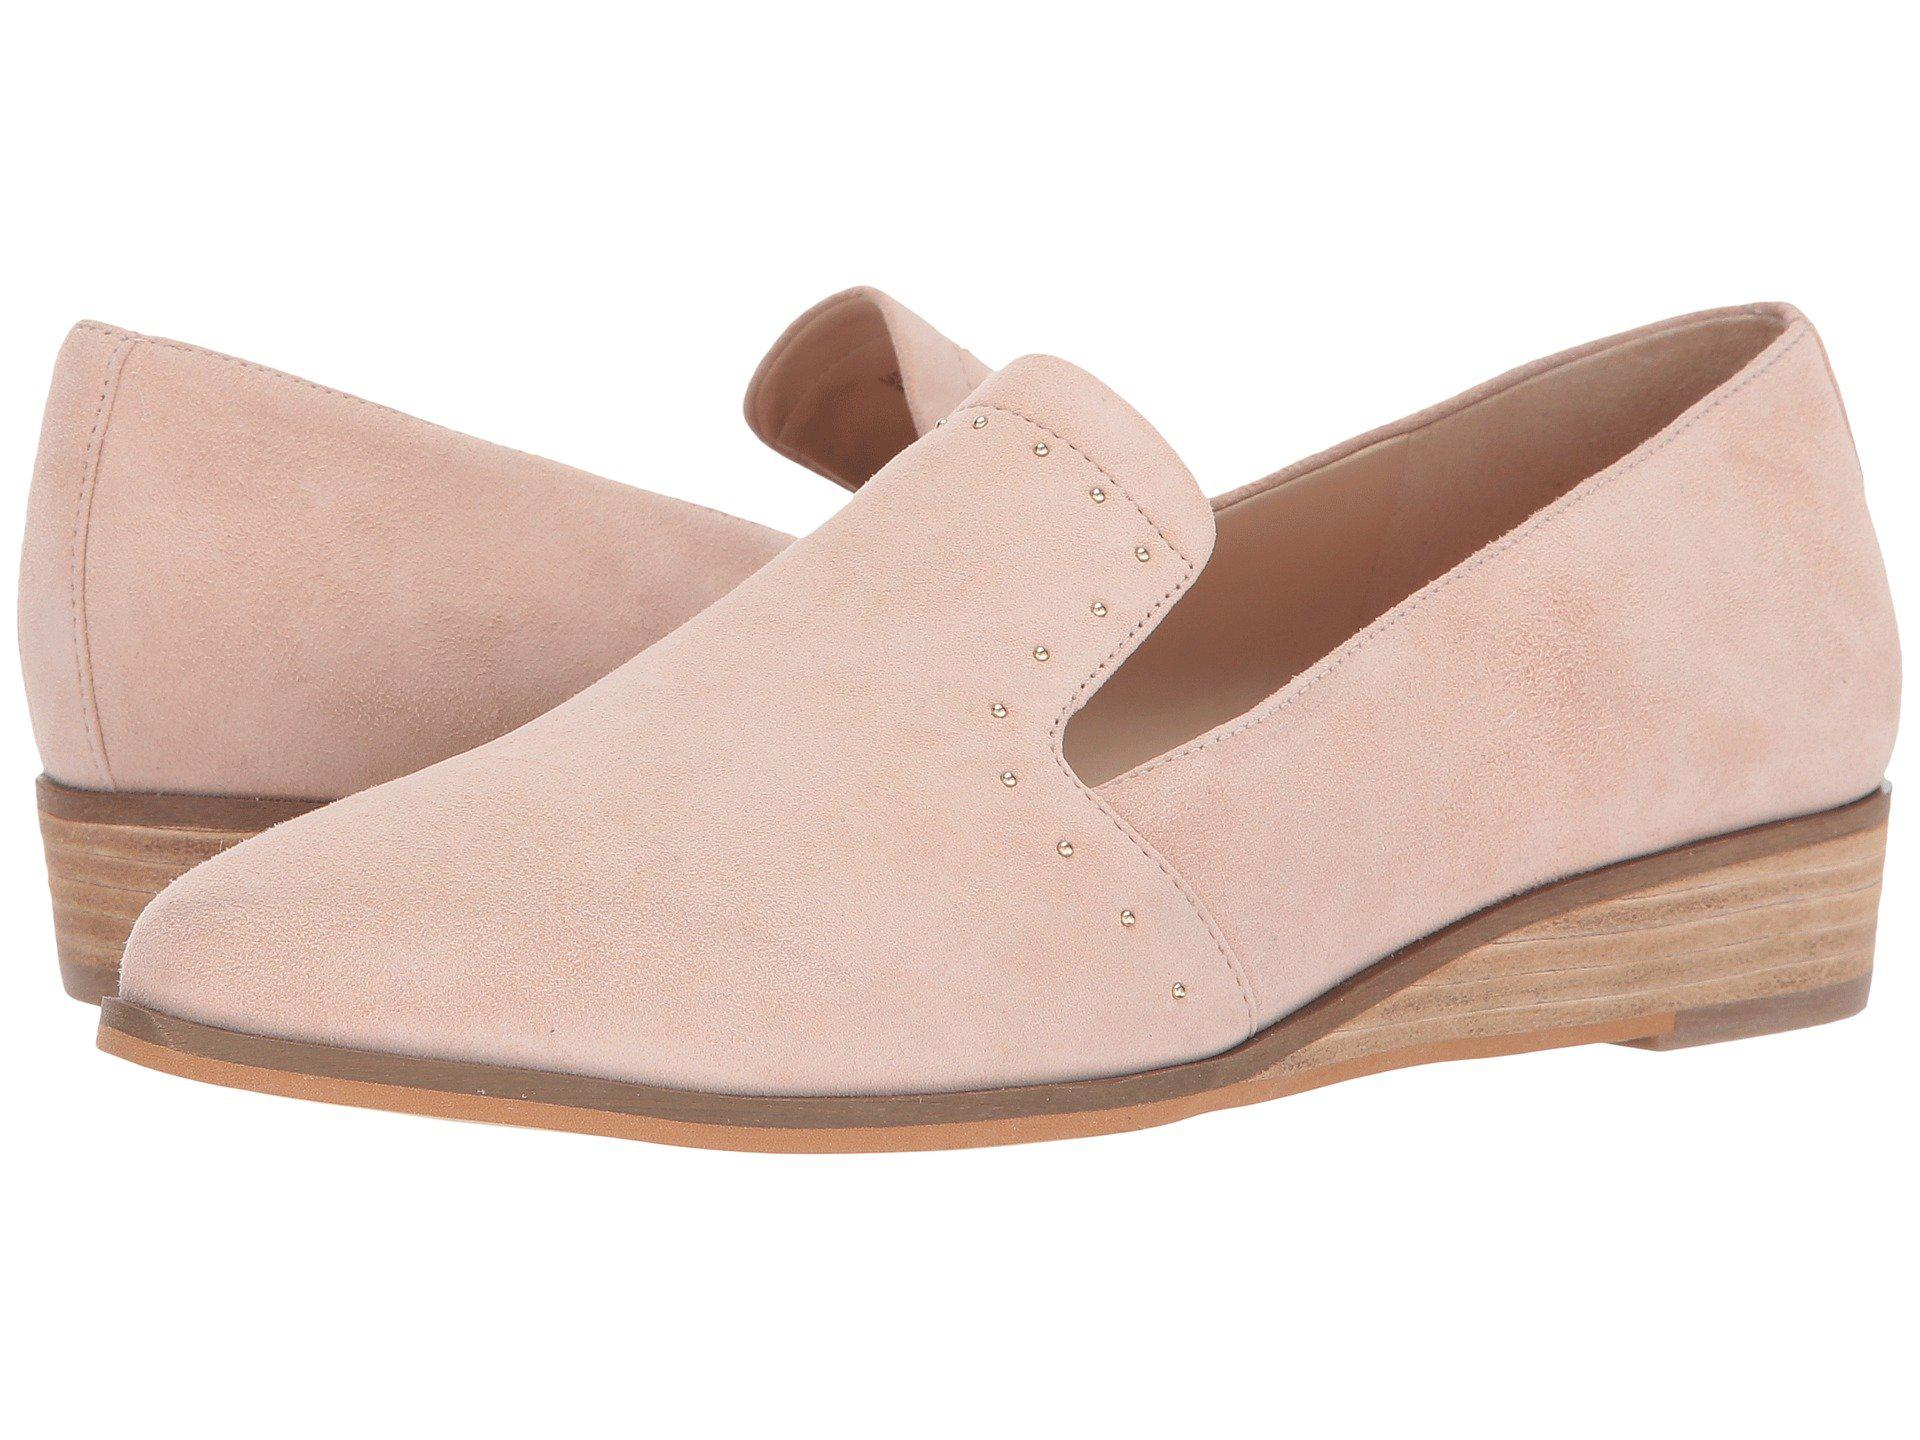 Dr. Dr. Scholl's Keane - Original Collection Keane De Scholl - Collection Originale Finishline Réel Pas Cher 5Mwde5